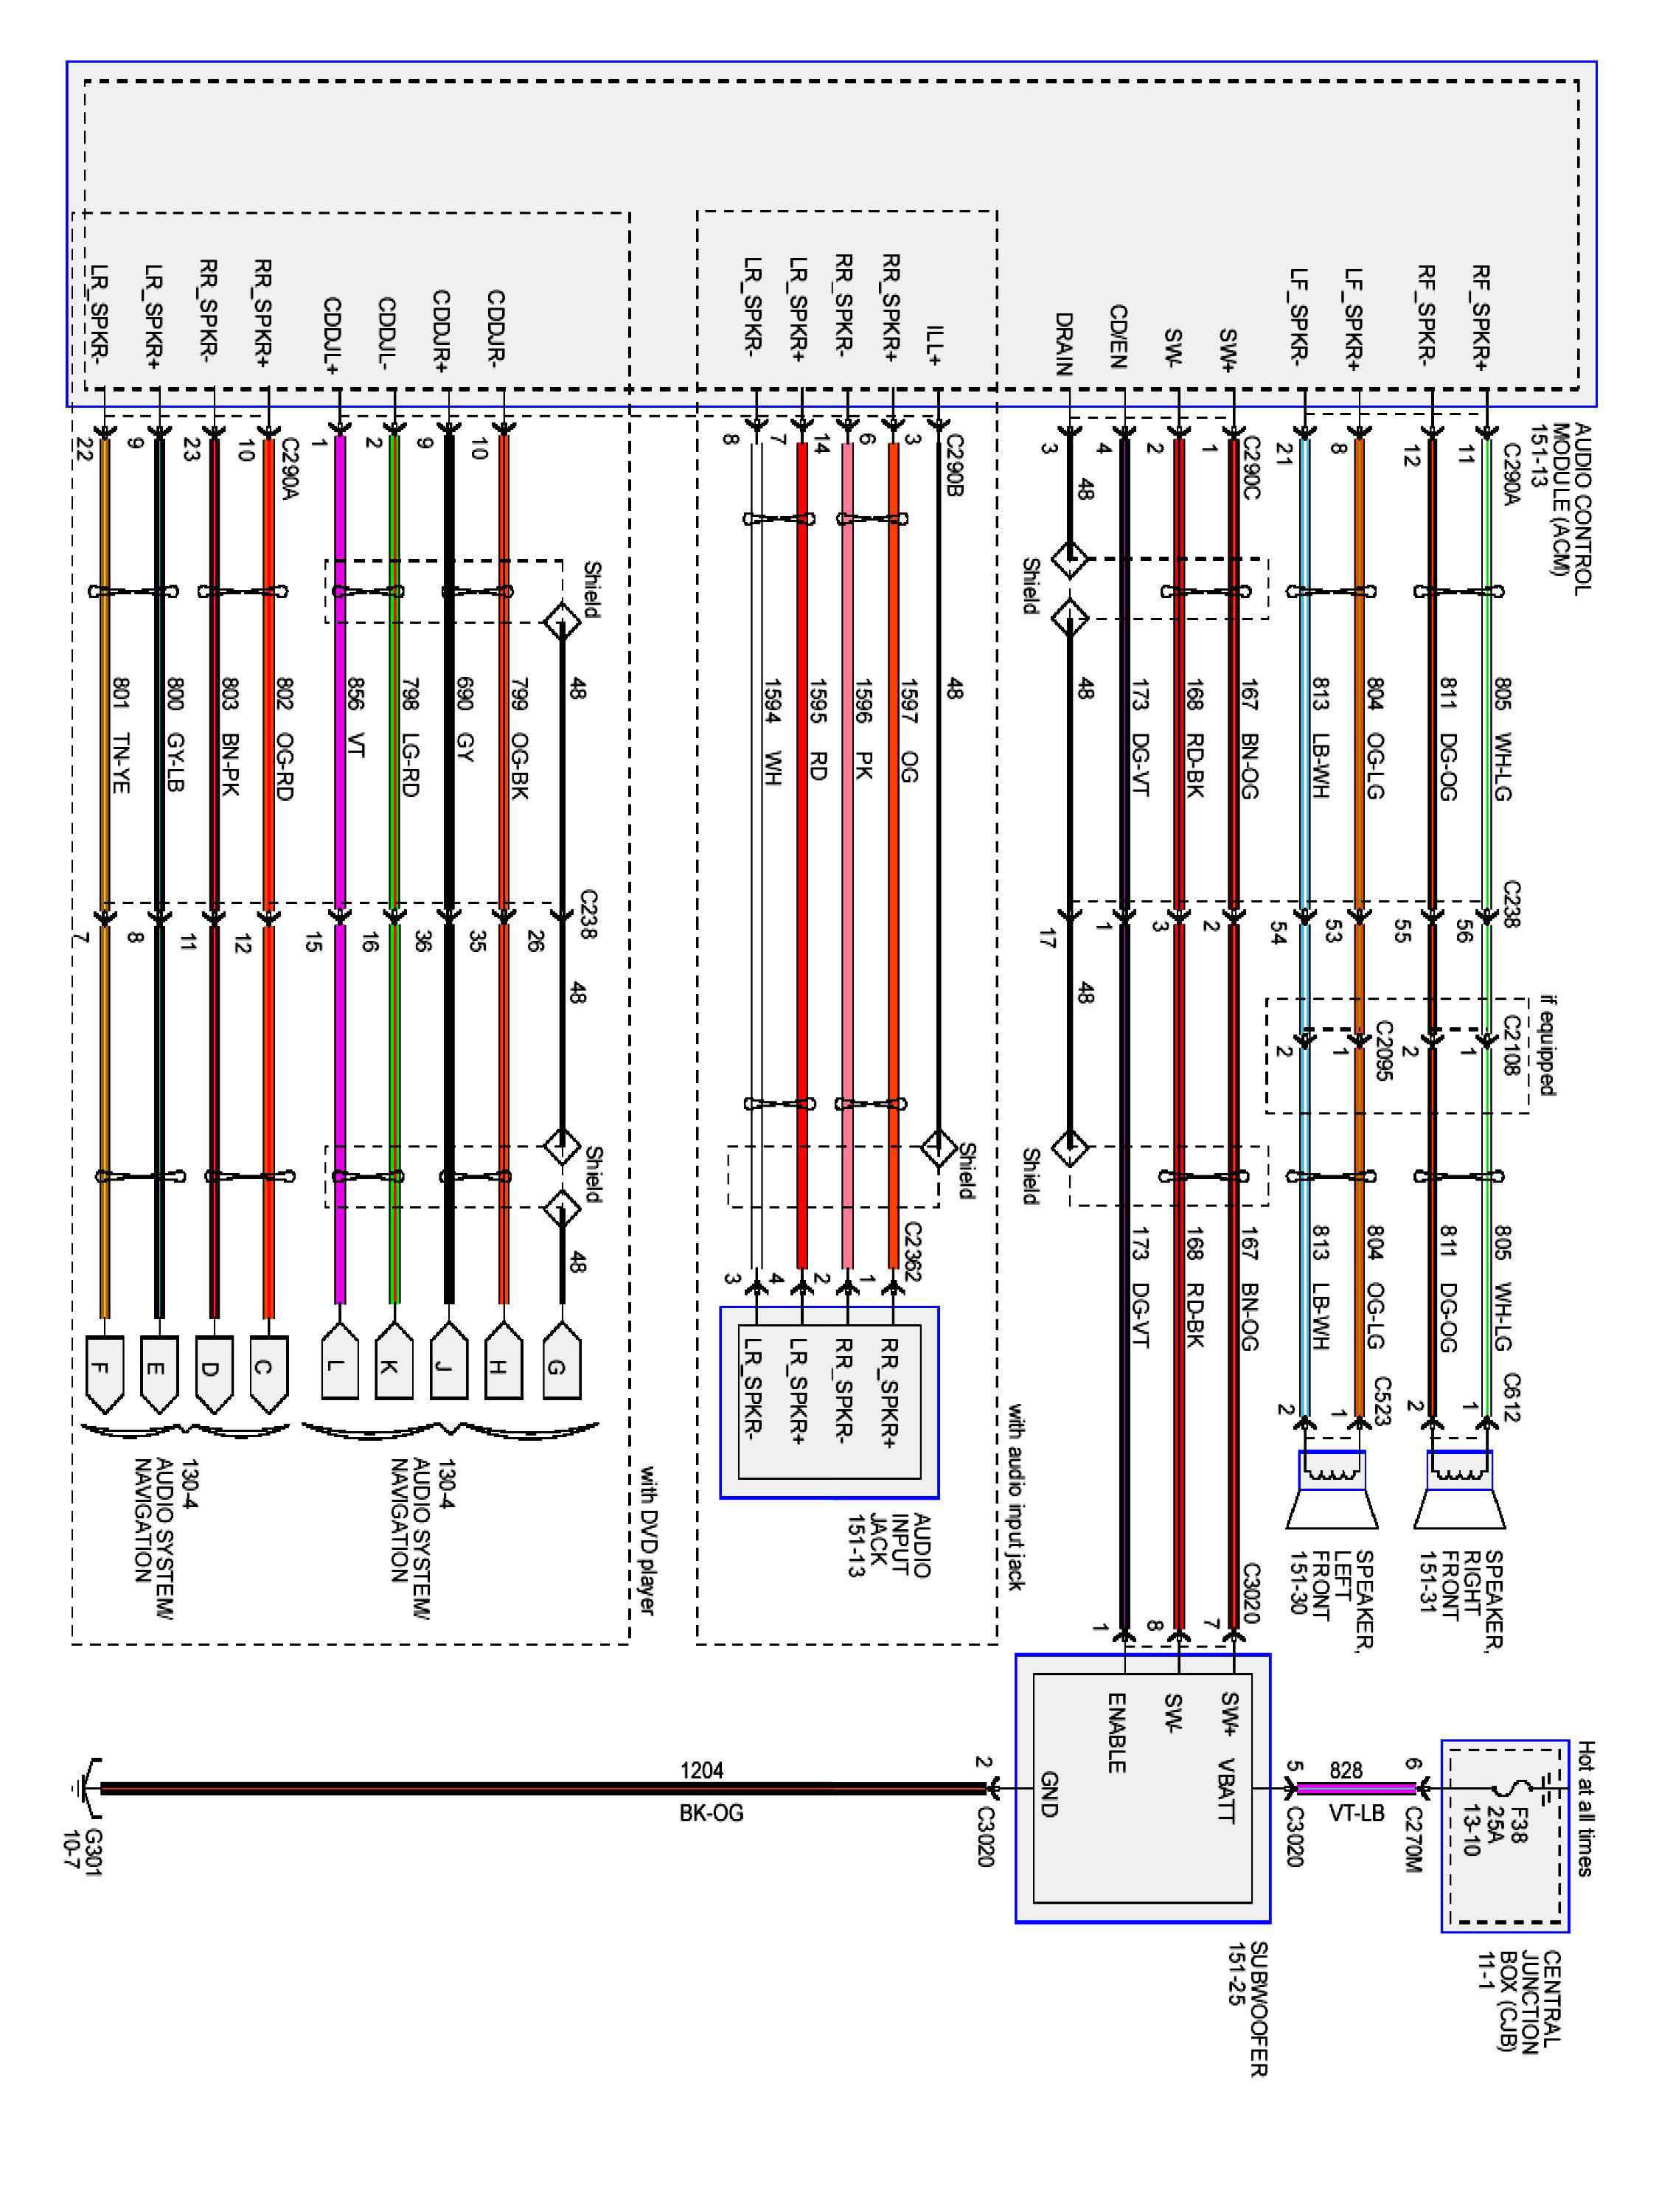 1998 ford f150 radio wiring diagram Download-2006 Ford Escape Radio Wiring Diagram 4-i